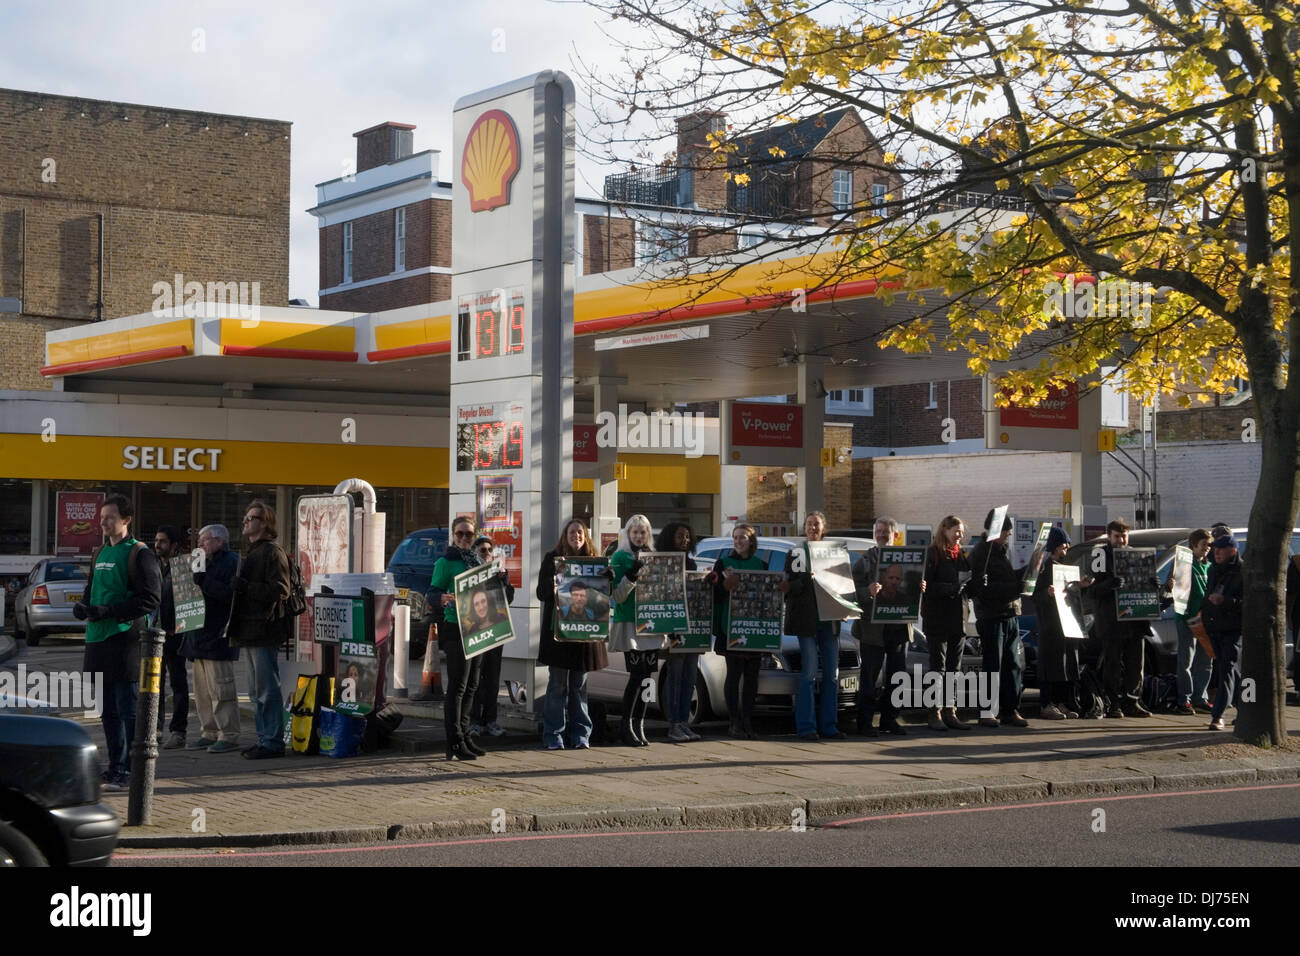 Islington, London, UK. 23rd Nov, 2013. Greenpeace campaigners gather outside Shell Petrol Station in Upper Street Islington to take part in a Free The Arctic 30 Protest. 28 Greenpeace activists have been released on bail from a Russian prison where they were being held on charges of piracy and hooliganism. Credit:  Andrea Heselton/Alamy Live News - Stock Image